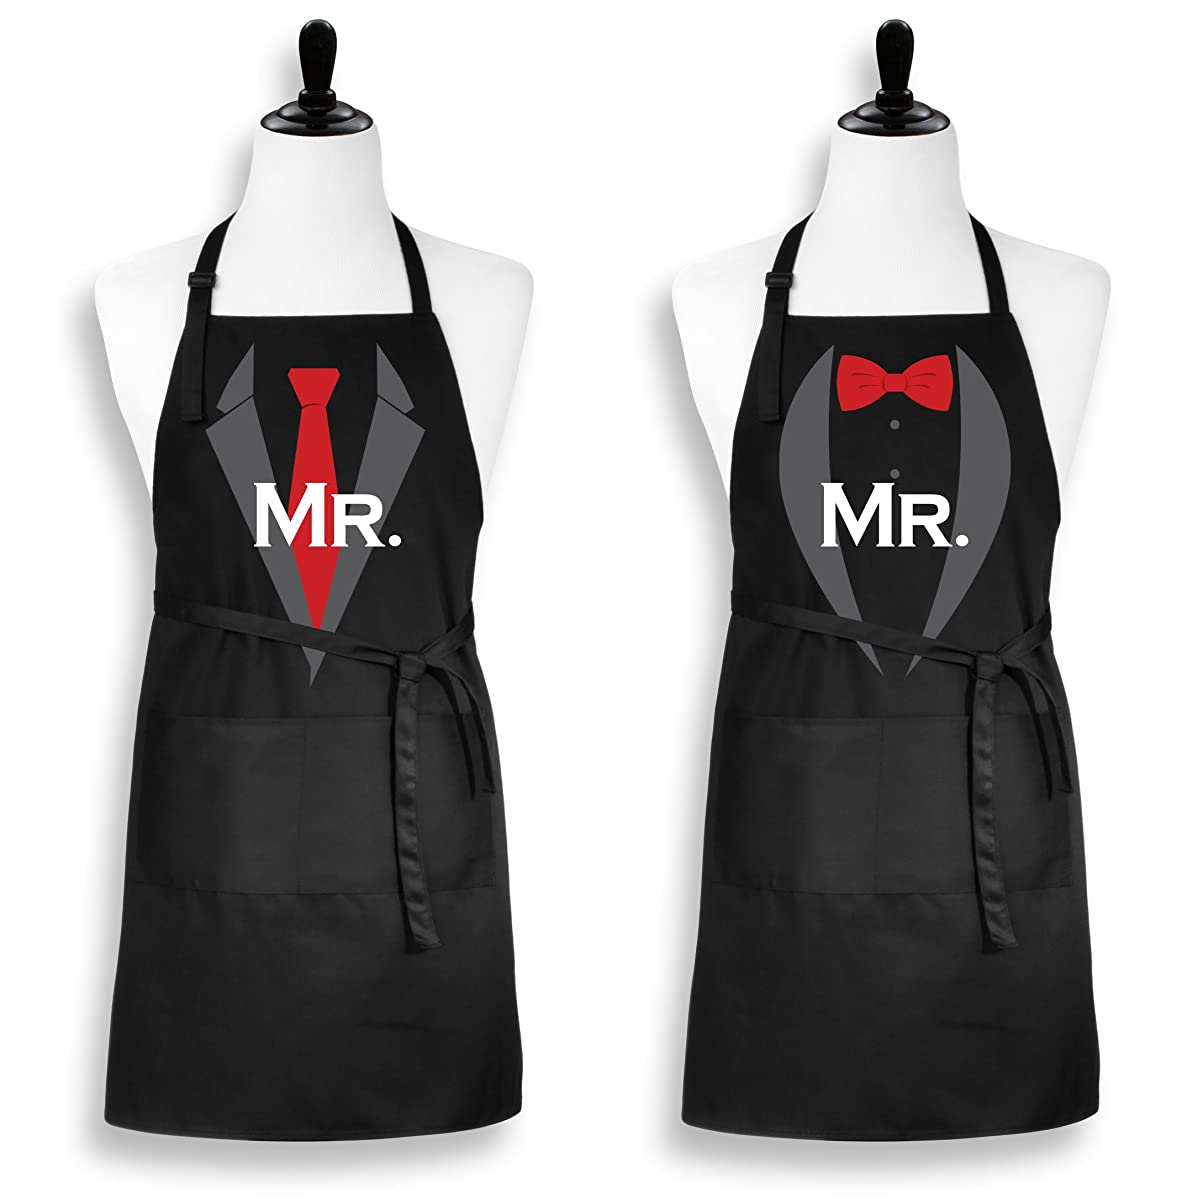 Mr. and Mr. Gay Couple Apron, His and His Same Sex Wedding Engagement Gift Set from Plum Hill